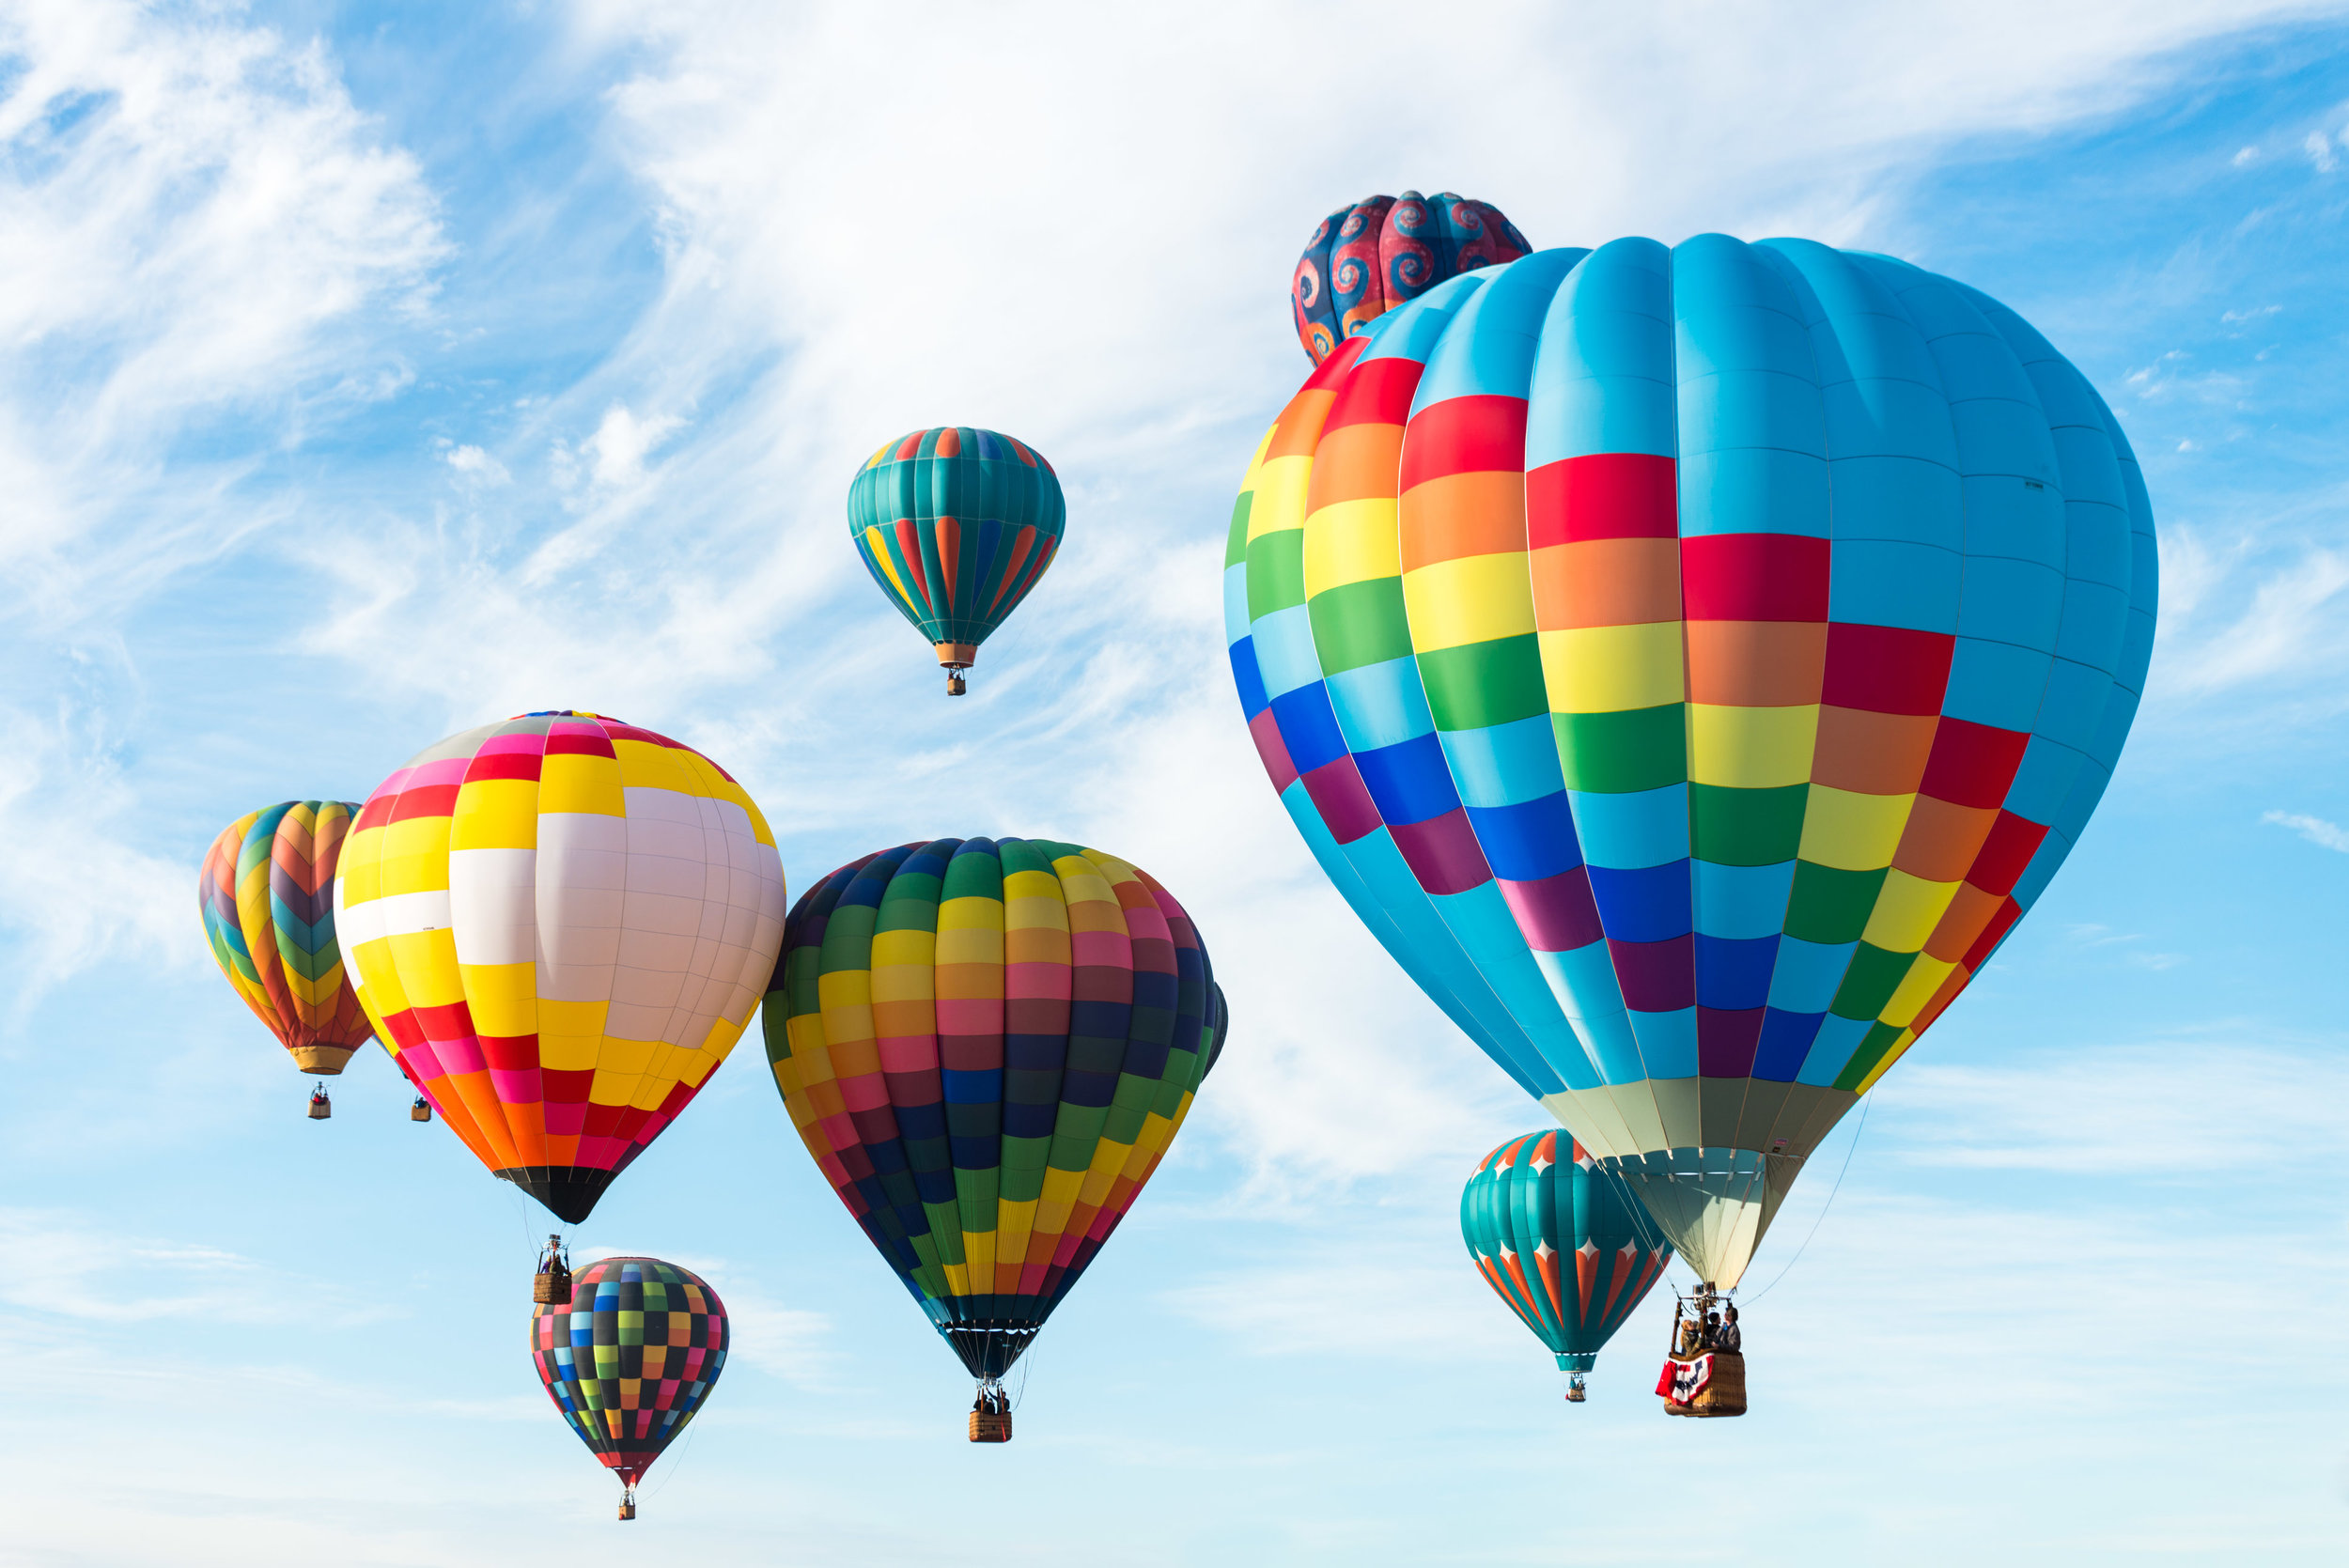 Tips for Photographing your first hot air balloon festival -